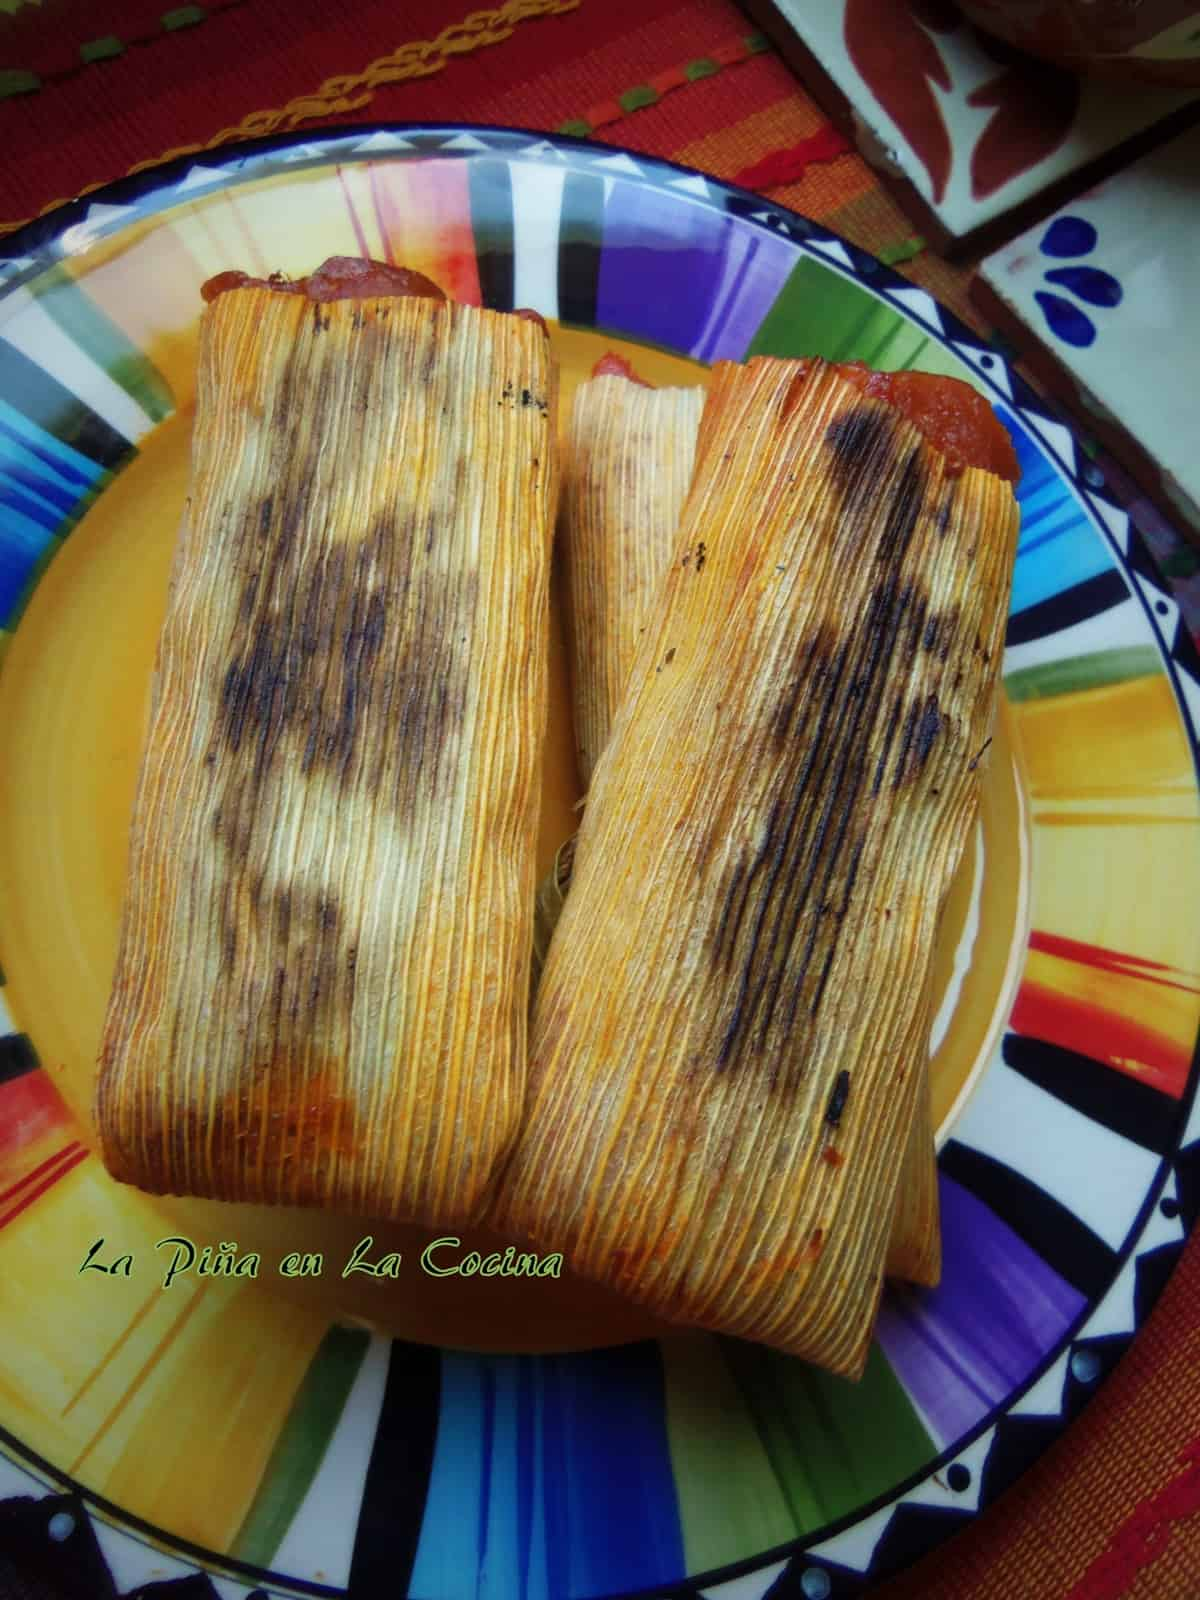 My favorite way to enjoy tamales is the next day when I can reheat them on a hot comal.